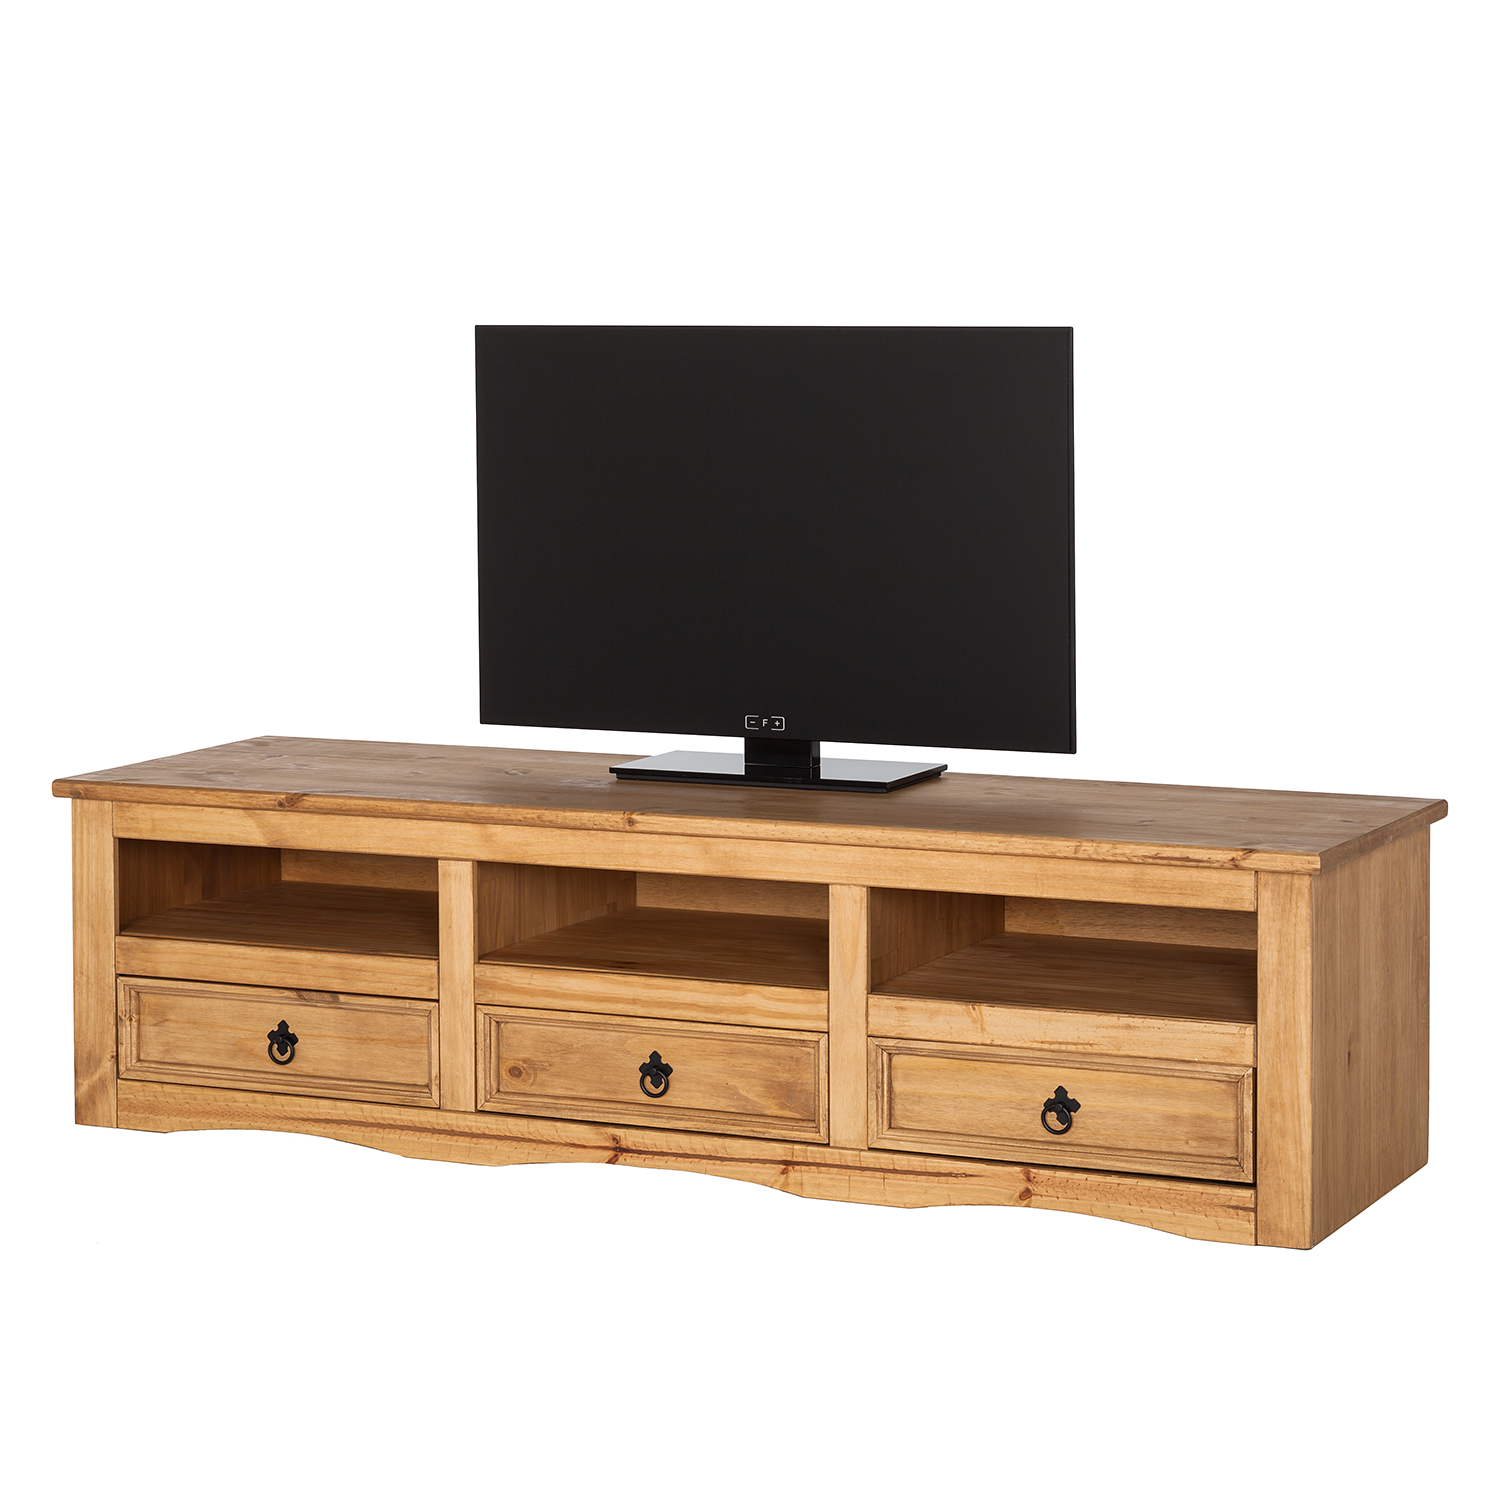 tv lowboard finca rustica ii kiefer massiv kiefer tv board schrank tisch regal 4053647126349 ebay. Black Bedroom Furniture Sets. Home Design Ideas